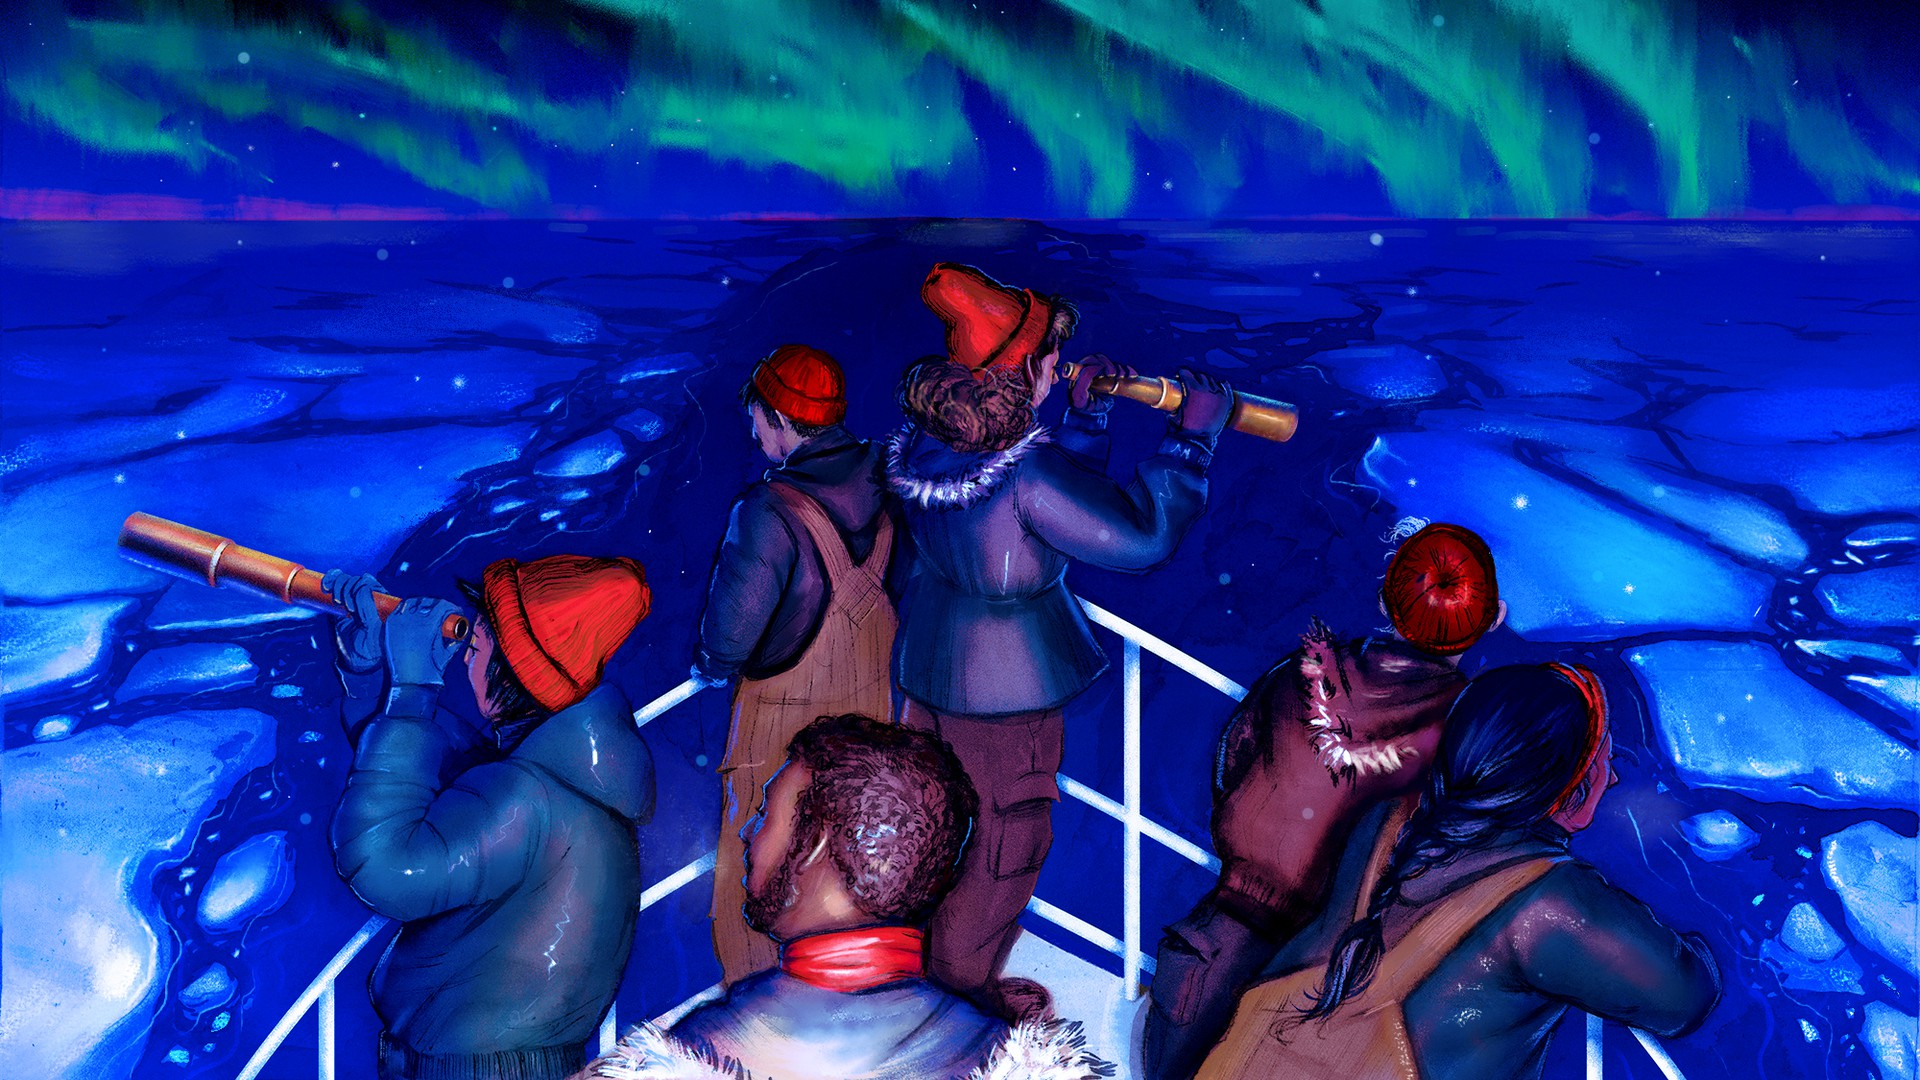 A group of people in heavy winter outerwear stand at the bow of a ship, looking through spyglasses at the icy ocean before them with the northern lights above.